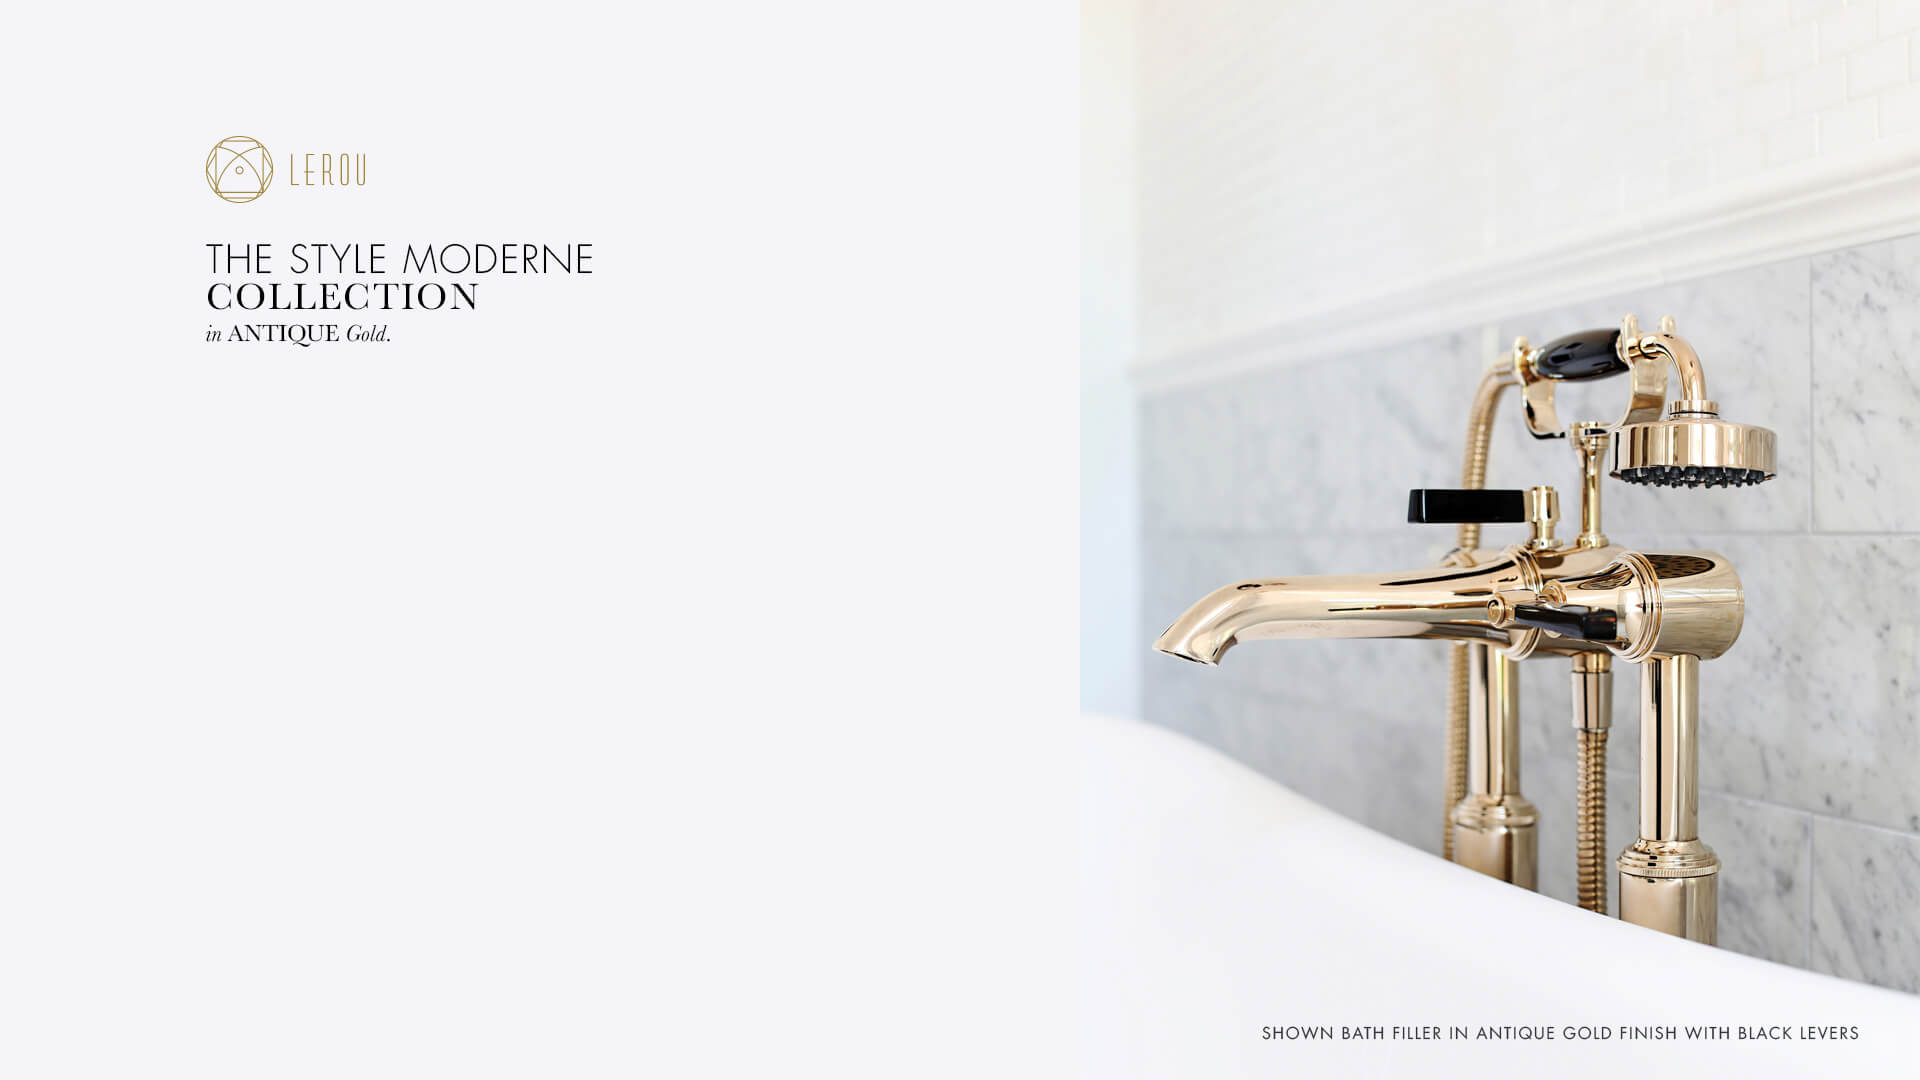 Design Your Tap As You Like: The Style Moderne Collection in Antique Gold. Ontwerp uw kraan zoals u wenst: de Style Moderne collectie in Antiek Goud.